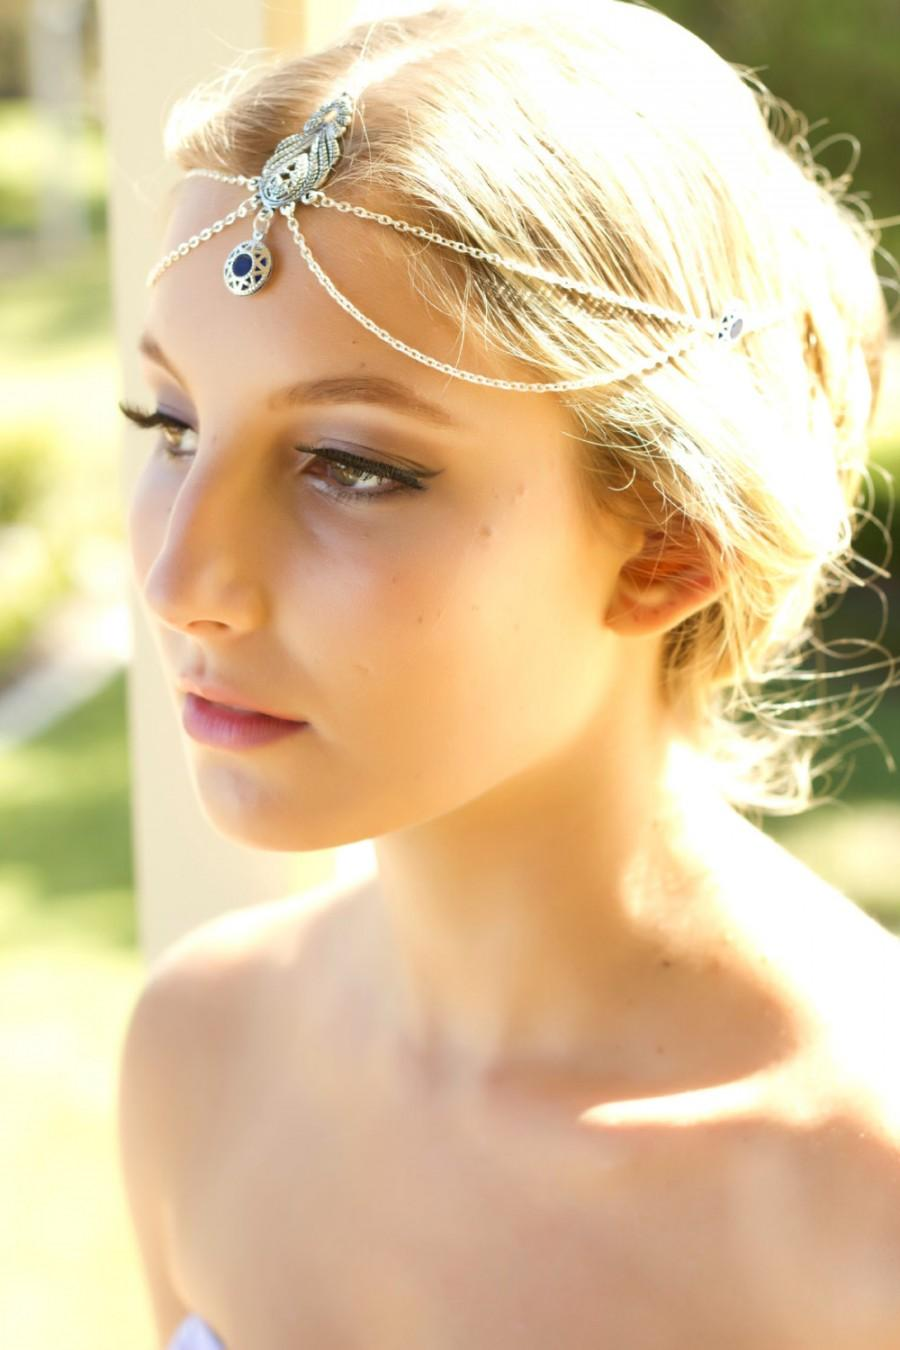 Headpiece Weddings Bridal Headpiece Wedding Head Piece Hair